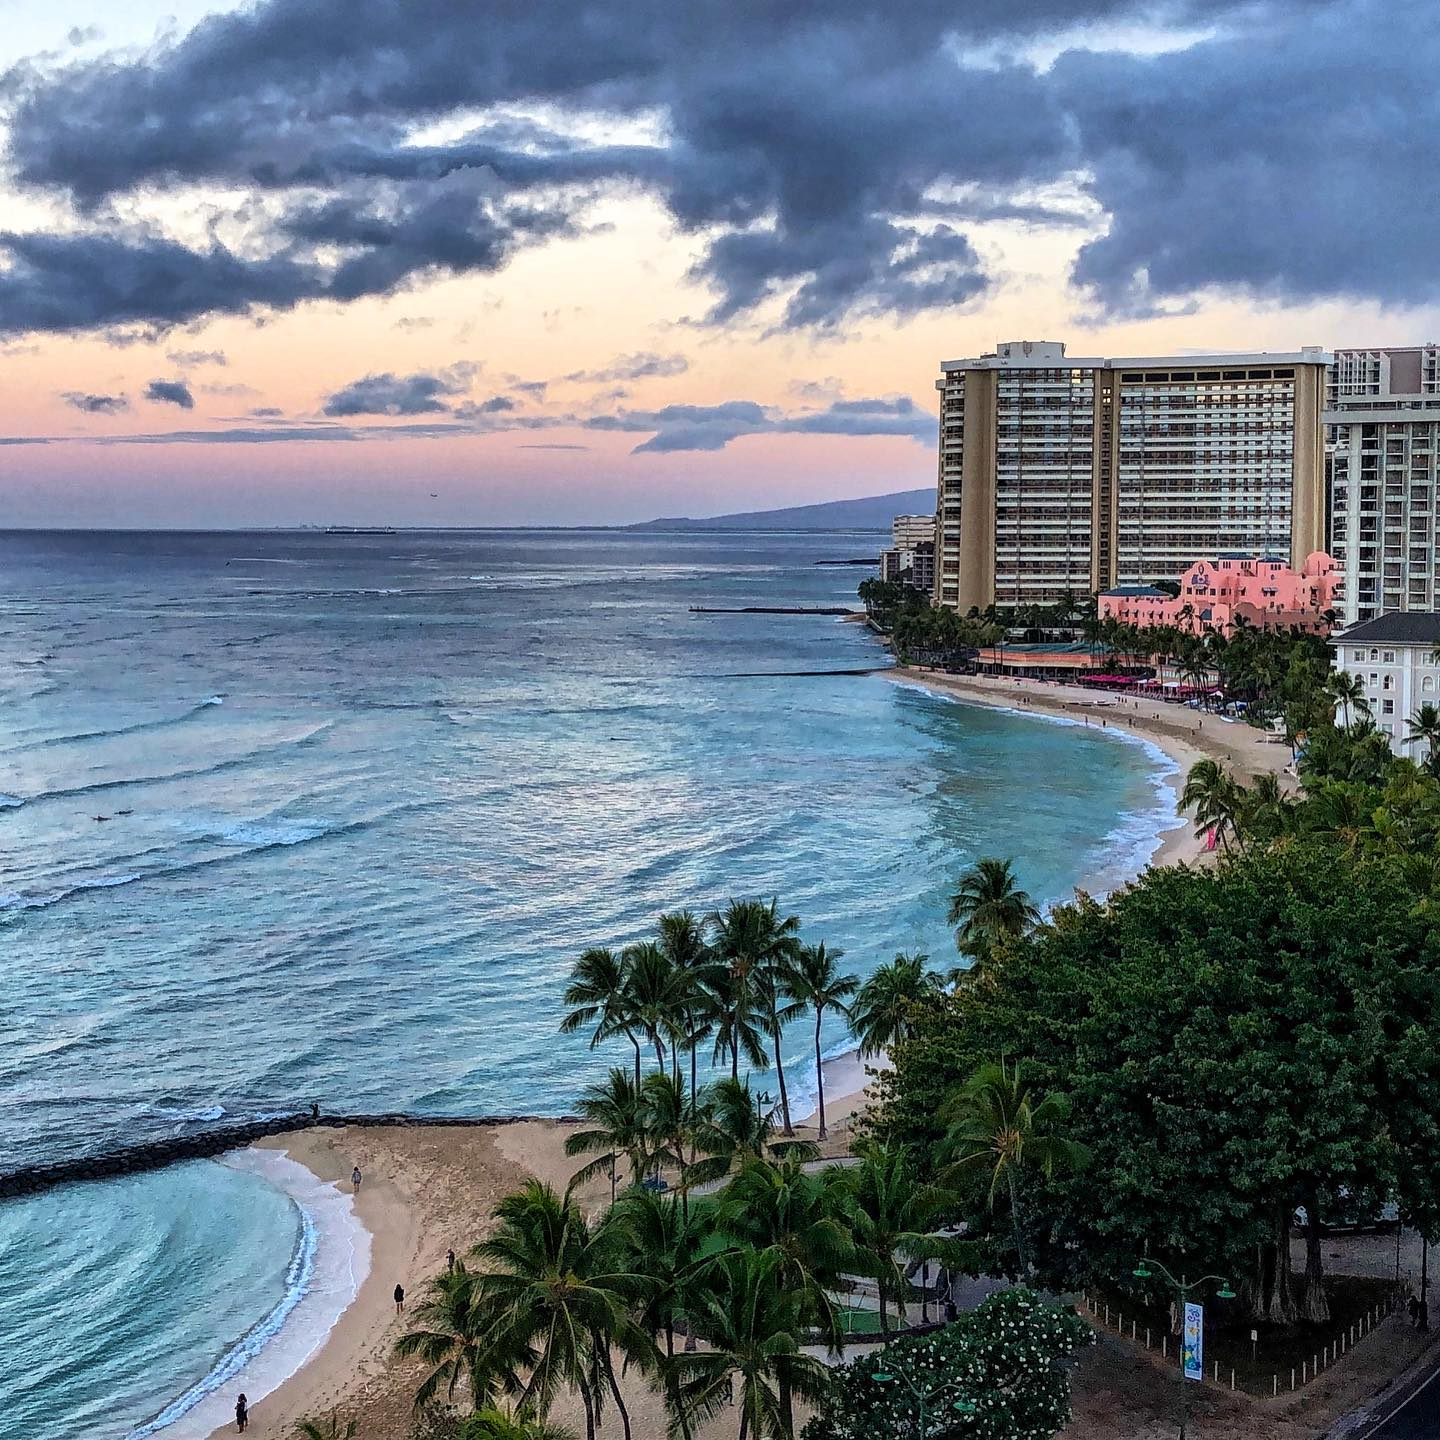 Waikiki, Oahu, Hawaii Wouldn't it be nice to have this view right now?  #usatravel #usatravels #hawaii #visithawaii #waikiki #waikikibeach #exploremore #exploretheworld #ig_hawaii #onlyinhawaii #hawaiilove #hawaiivacation #oahu #oahuhawaii #aloha #roomwithaview #hawaiistagram #summervibes #travelbug #travelpics #hawaiipic #picoftheday #travelmemories #travelmood #travelstoke #travelgram #tellus #oceanlover #bluehawaii #instatraveling